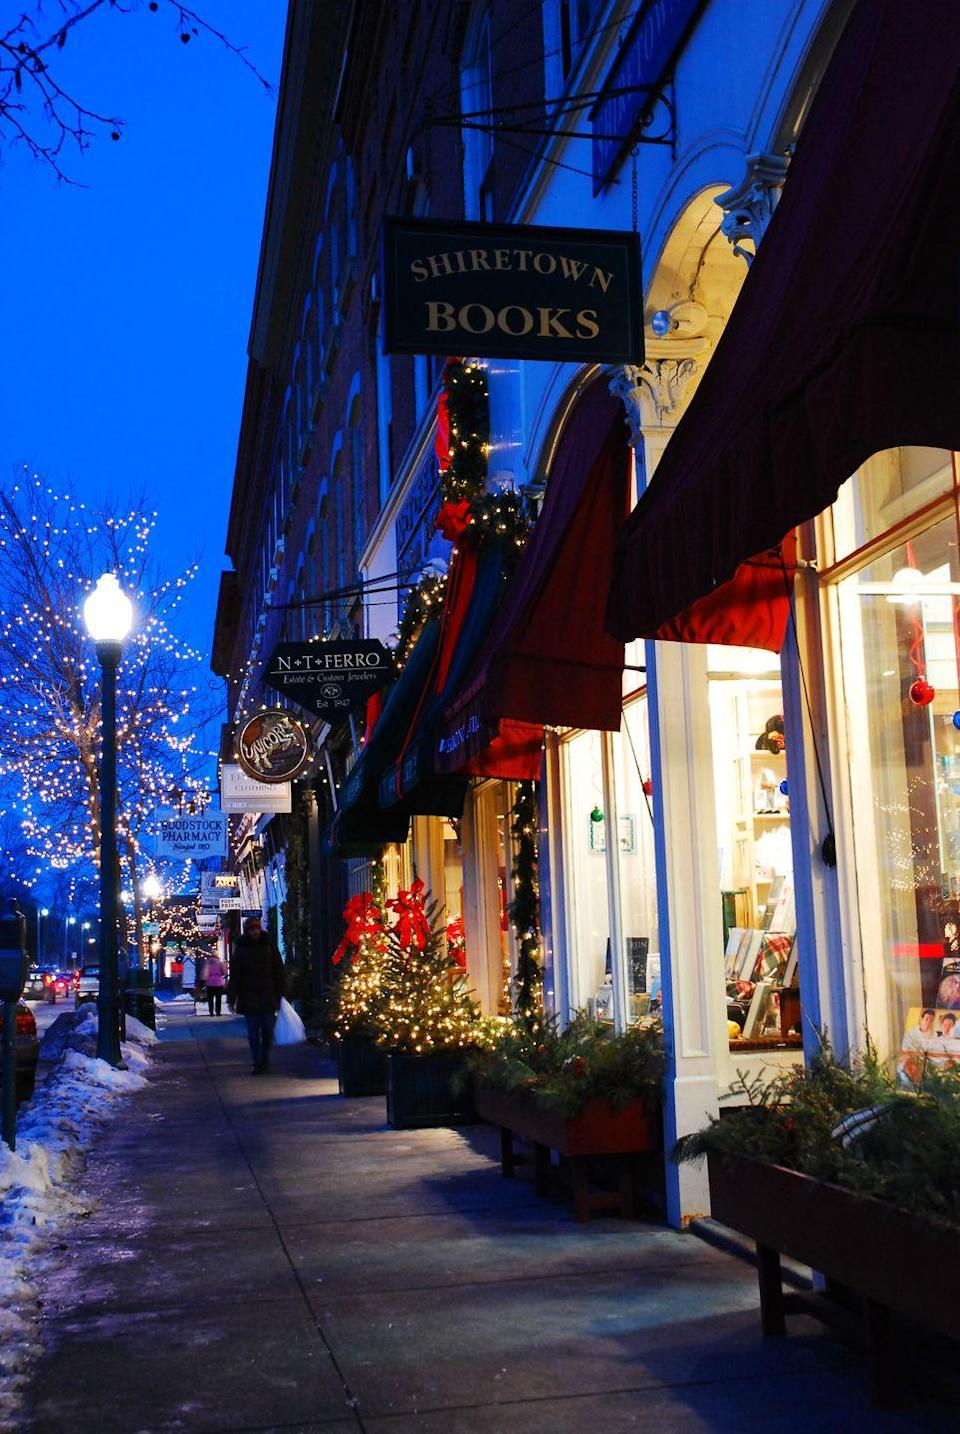 """<p>Not only is Woodstock a picturesque town year-round, it's absolutely breathtaking during the holiday season. Every year, in mid-December, Woodstock holds its <a href=""""https://www.woodstockvt.com/events/wassail-weekend"""" rel=""""nofollow noopener"""" target=""""_blank"""" data-ylk=""""slk:Wassail Weekend"""" class=""""link rapid-noclick-resp"""">Wassail Weekend</a>, complete with caroling, twinkling lights, historic decorated homes, and unique local shops filled with gifts for everyone.. You can take wagon rides throughout the town and see the next-level holiday decorations at Billings Farm.</p>"""